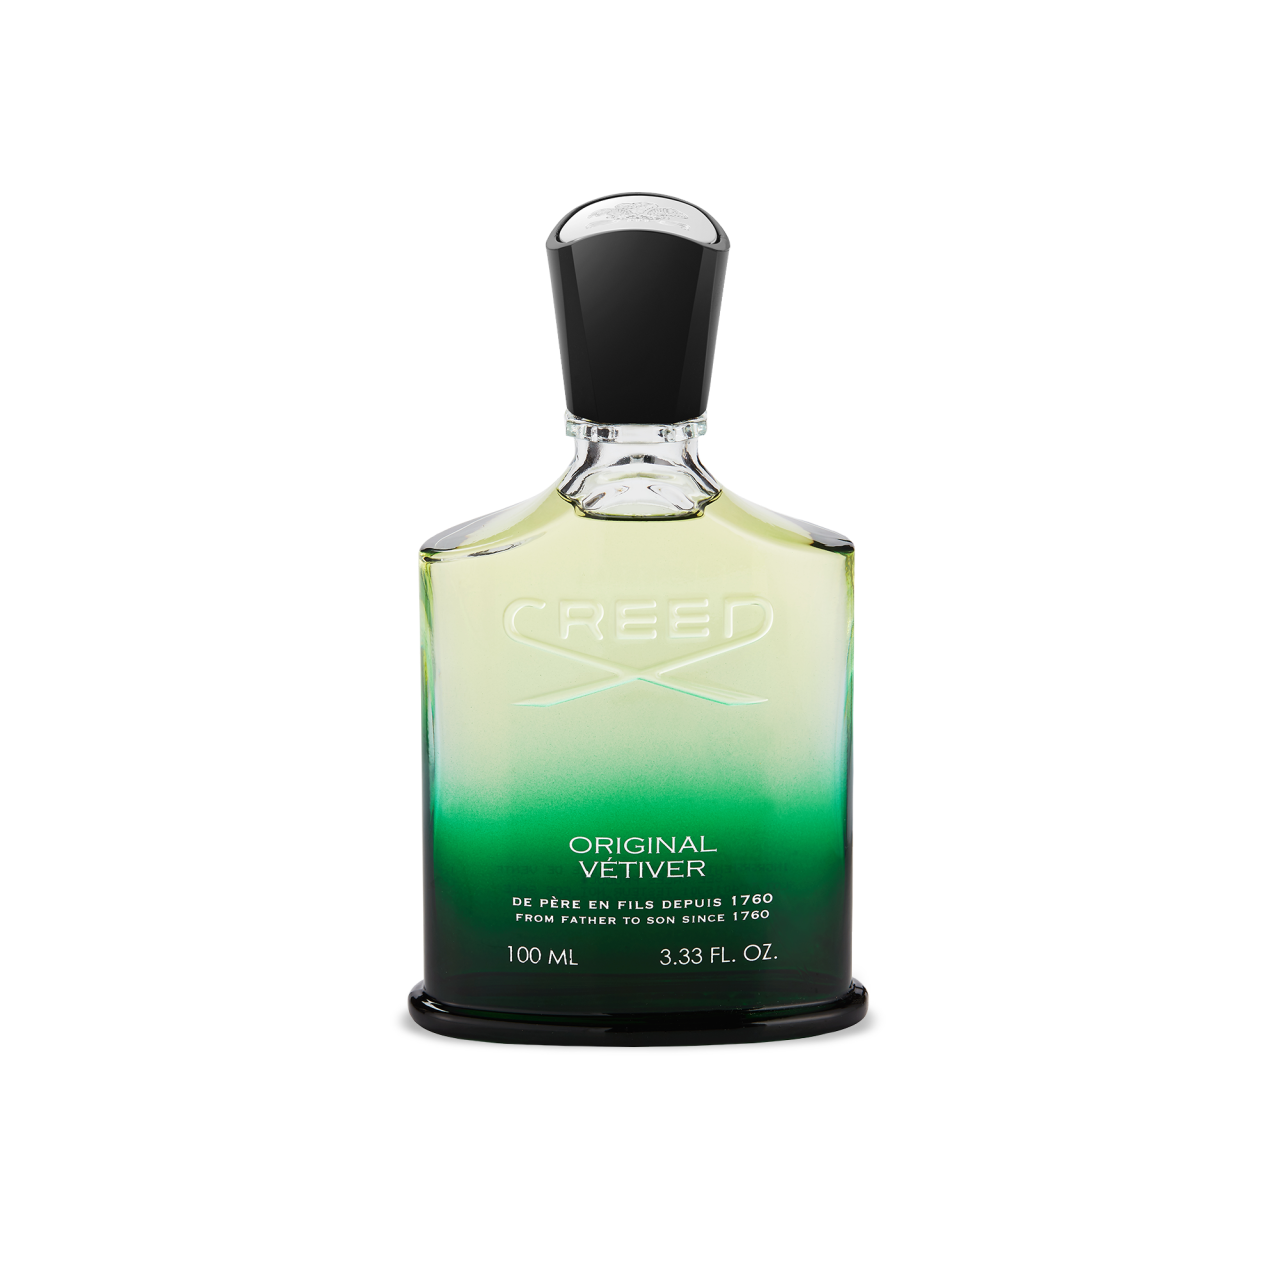 Discover Original Vetiver On Creedboutique